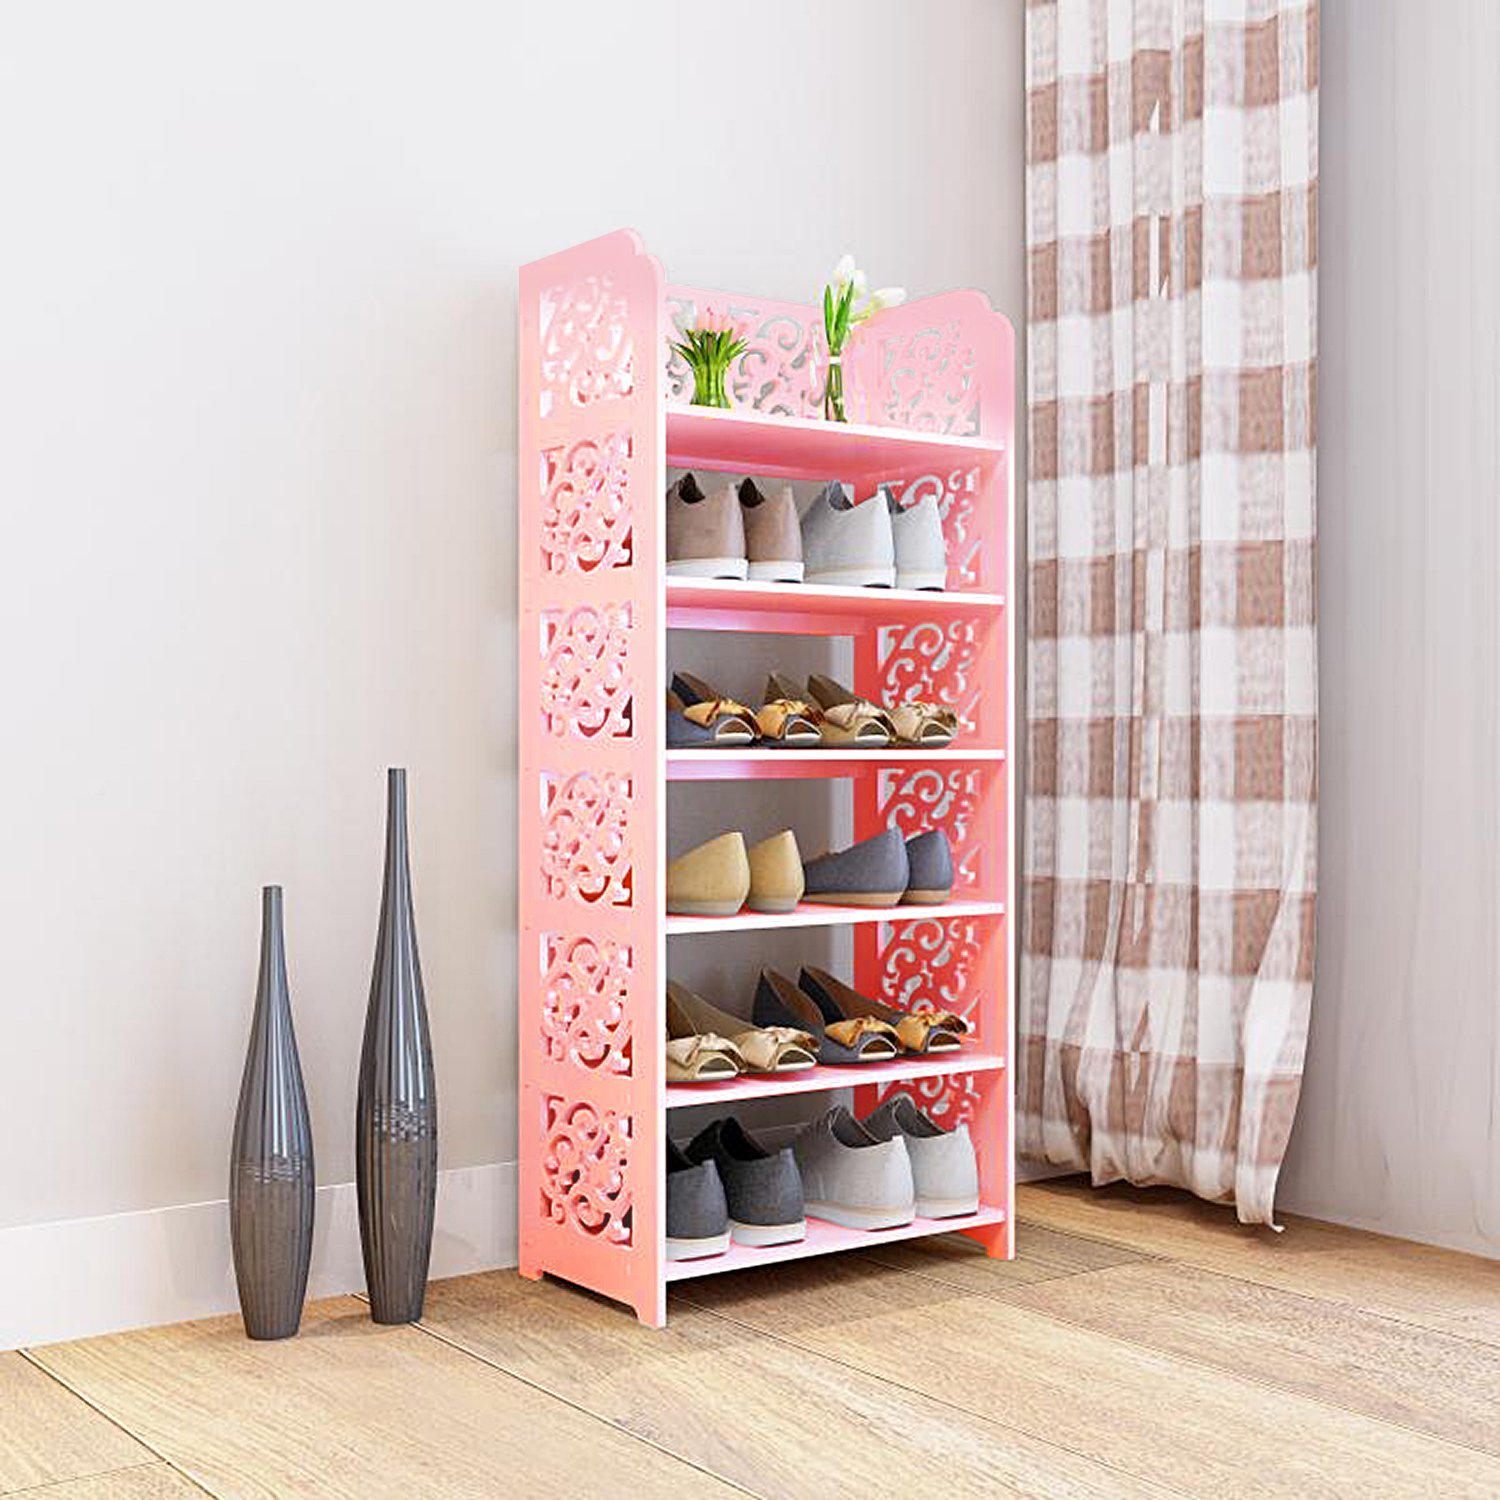 DL furniture WPC Tall 6 Tier Multipurpose Shoe Rack & Book Shelf L16.5 x W9.5 x H38 Environmental Friendly Material | Pink by DL furniture (Image #2)